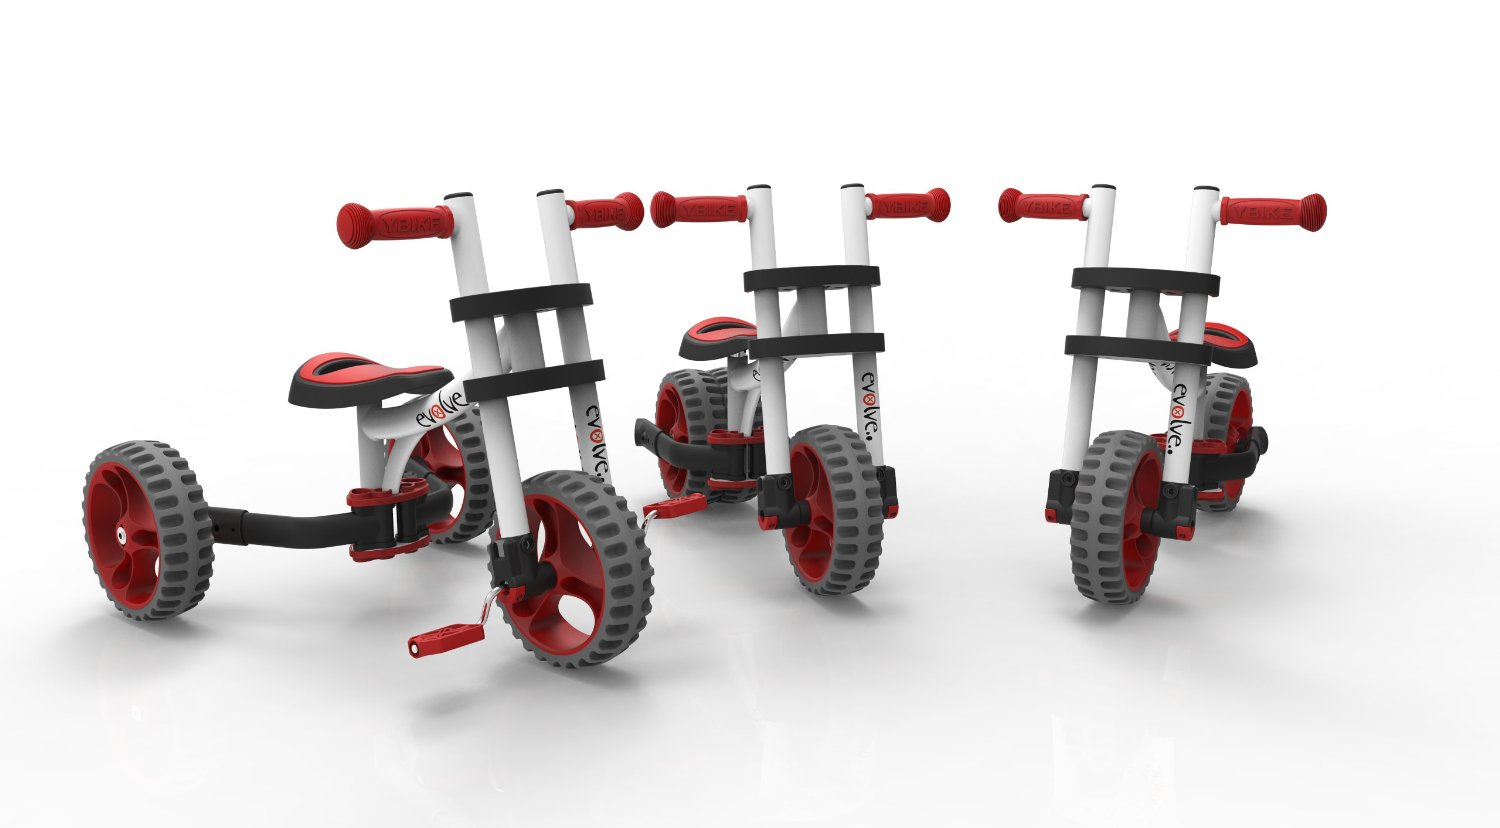 Why YBIKE's ride-on toys make a great holiday gift for kids of all ages. We can even help you choose.